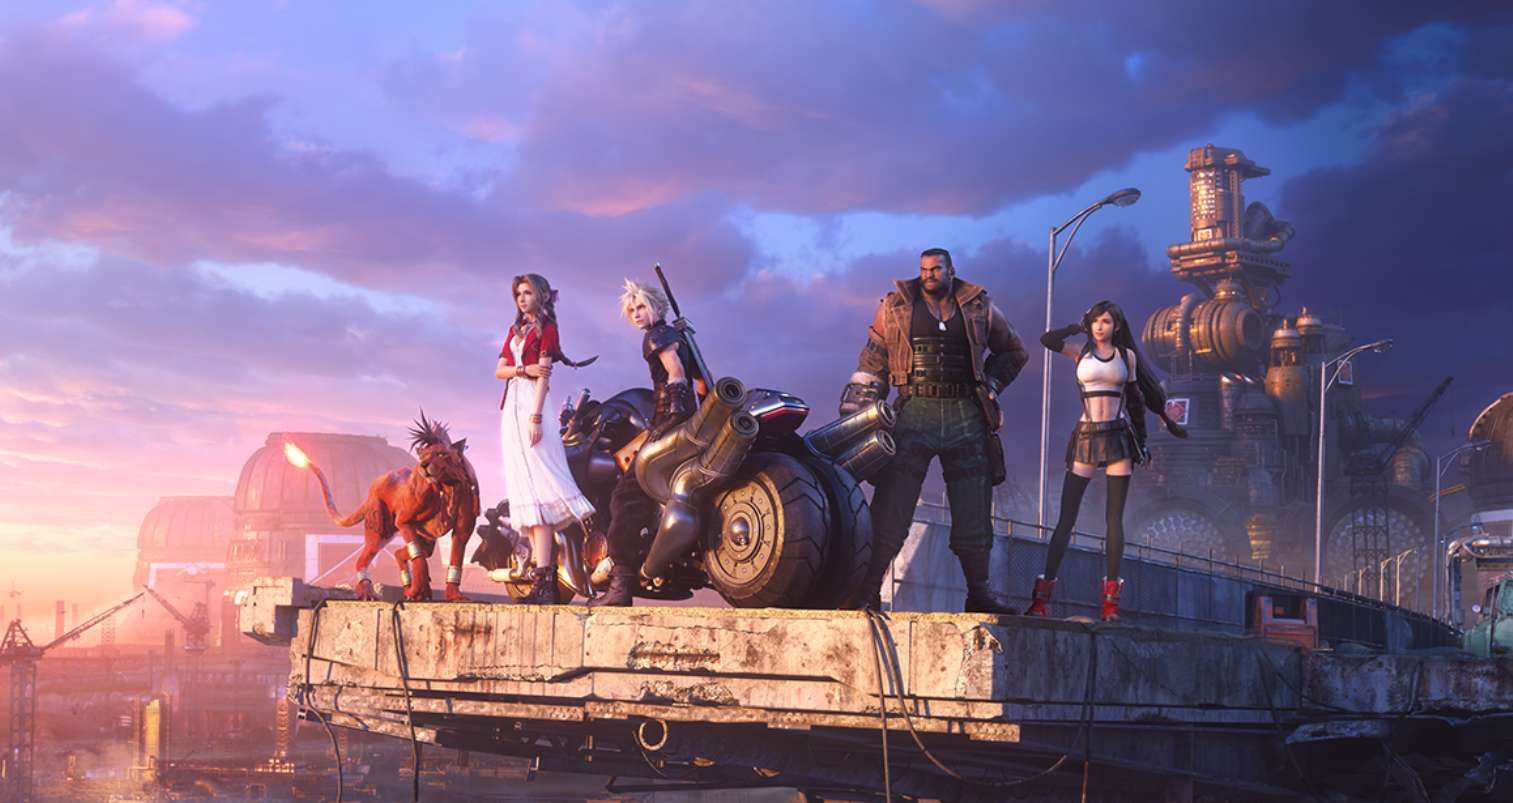 Final Fantasy 7 Remake Takes Home Best RPG And Best Score And Music Awards At The Game Awards 2020